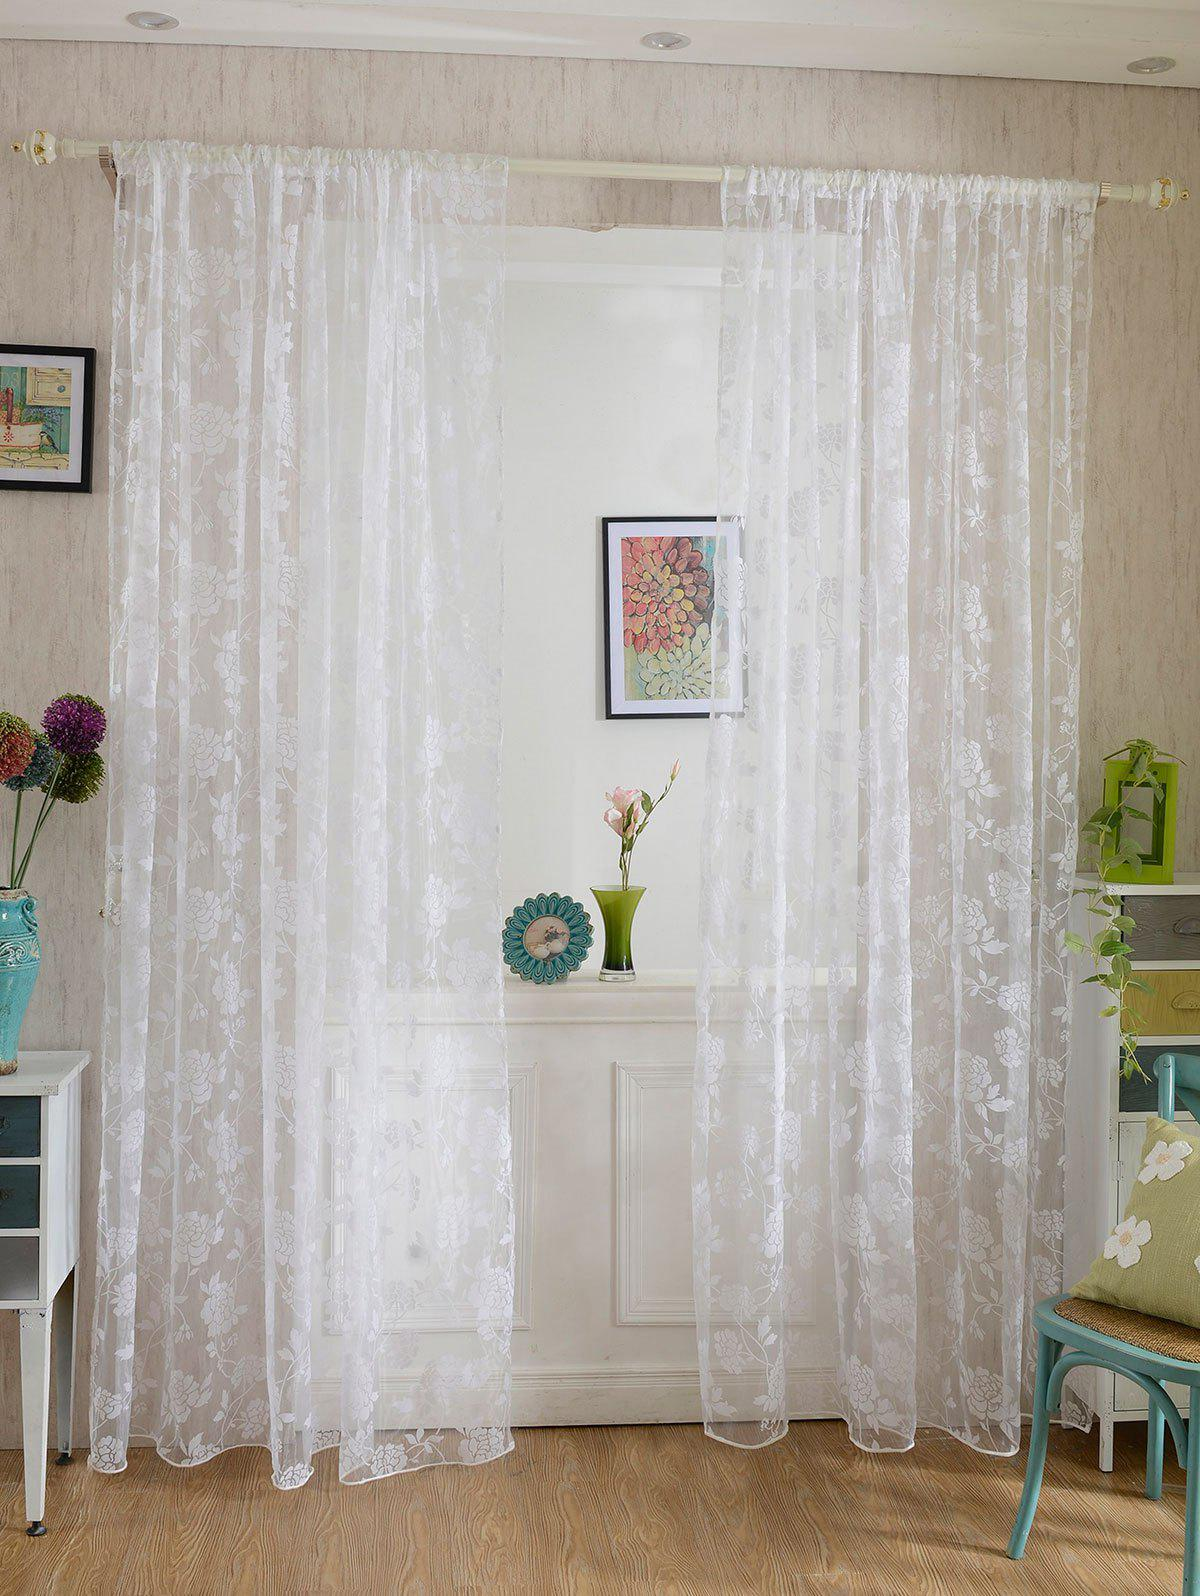 2Pcs/Set Rose Sheer Tulle Fabric Curtain For BedroomHOME<br><br>Size: 100*200CM ?2PCS/SET?; Color: WHITE; Applicable Window Type: French Window; Function: Translucidus (Shading Rate 1%-40%); Installation Type: Ceiling Installation; Location: Window; Material: Voile Curtain; Opening and Closing Method: Left and Right Biparting Open; Pattern Type: Floral; Processing Accessories Cost: Excluded; Style: European and American Style; Type: Tulle; Use: Cafe,Home,Hospital,Hotel,Office; Weight: 0.1800kg; Package Contents: 2 x Curtains;